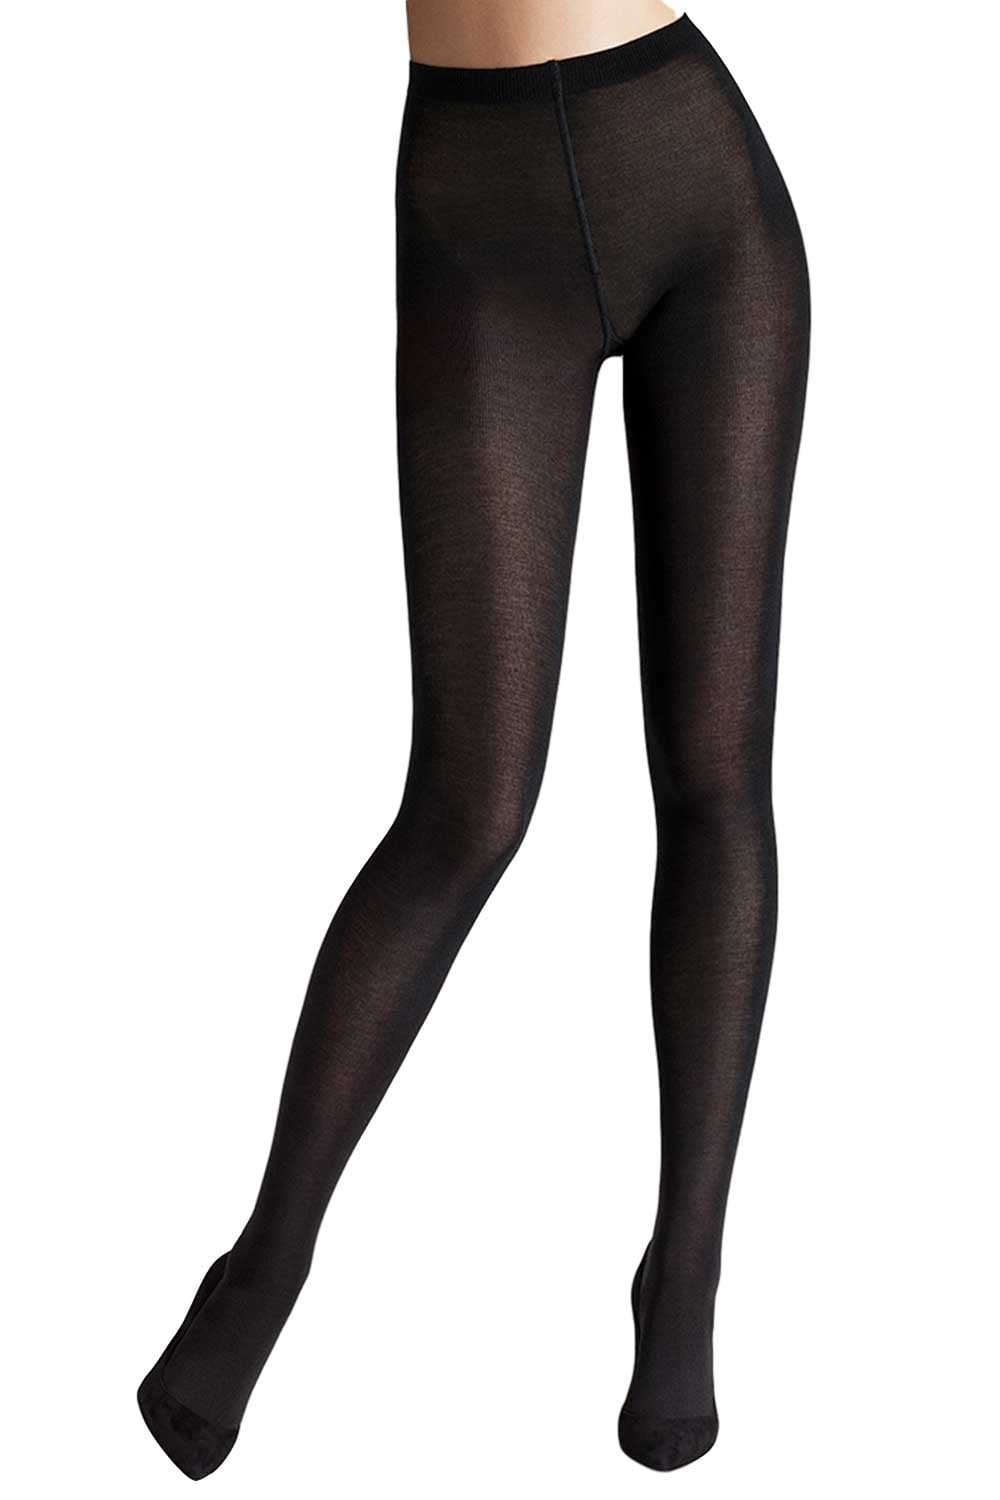 affordable price 2019 authentic preview of Merino Wool Tights